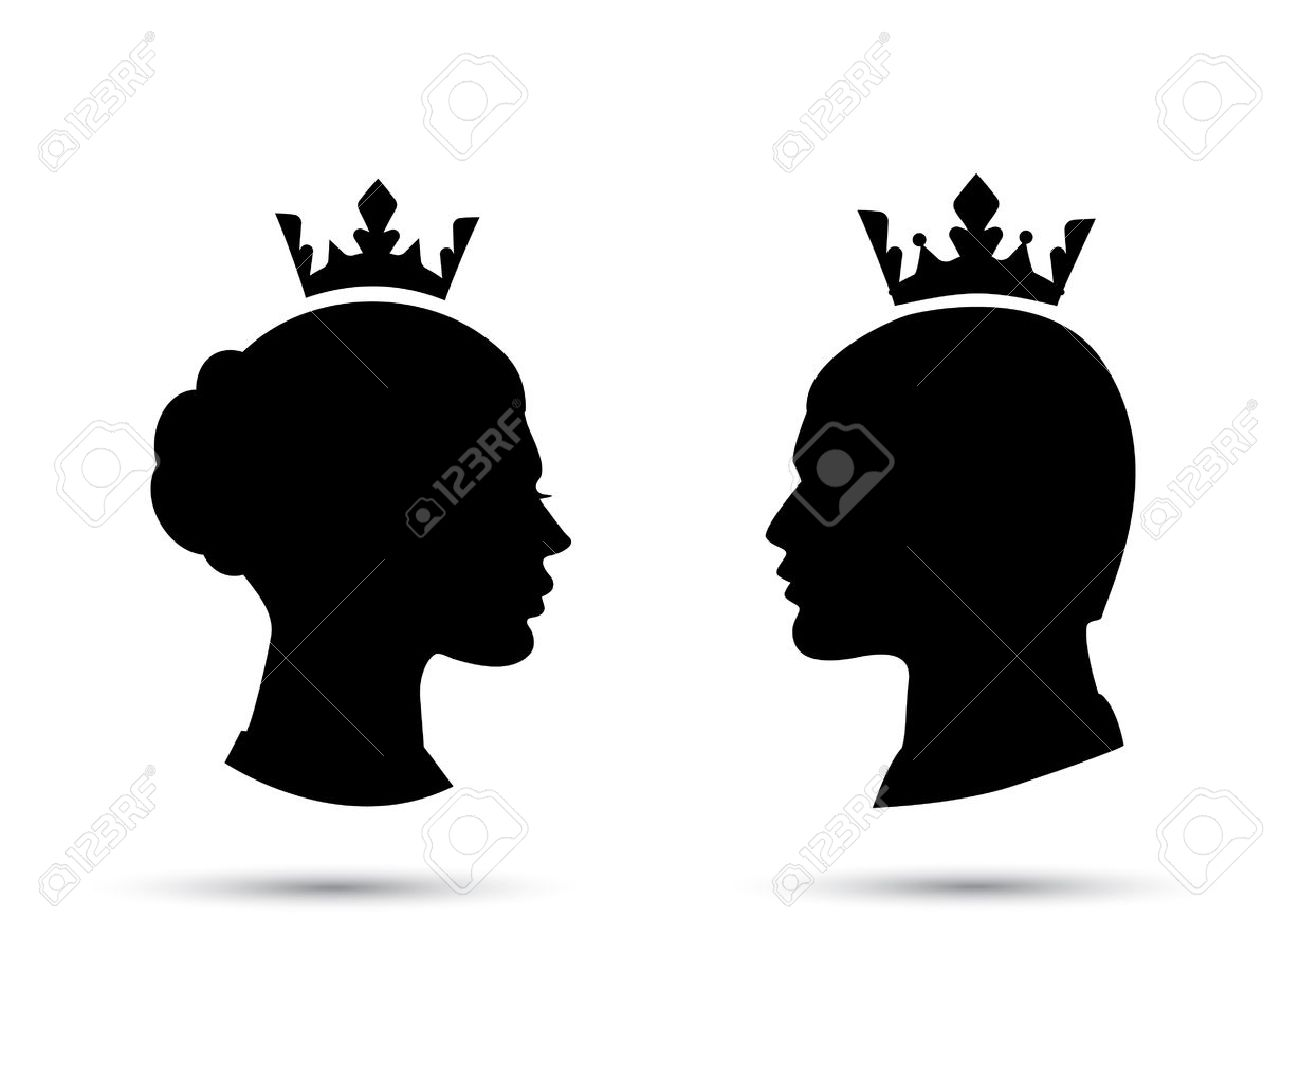 king and queen heads king and queen face black silhouette of